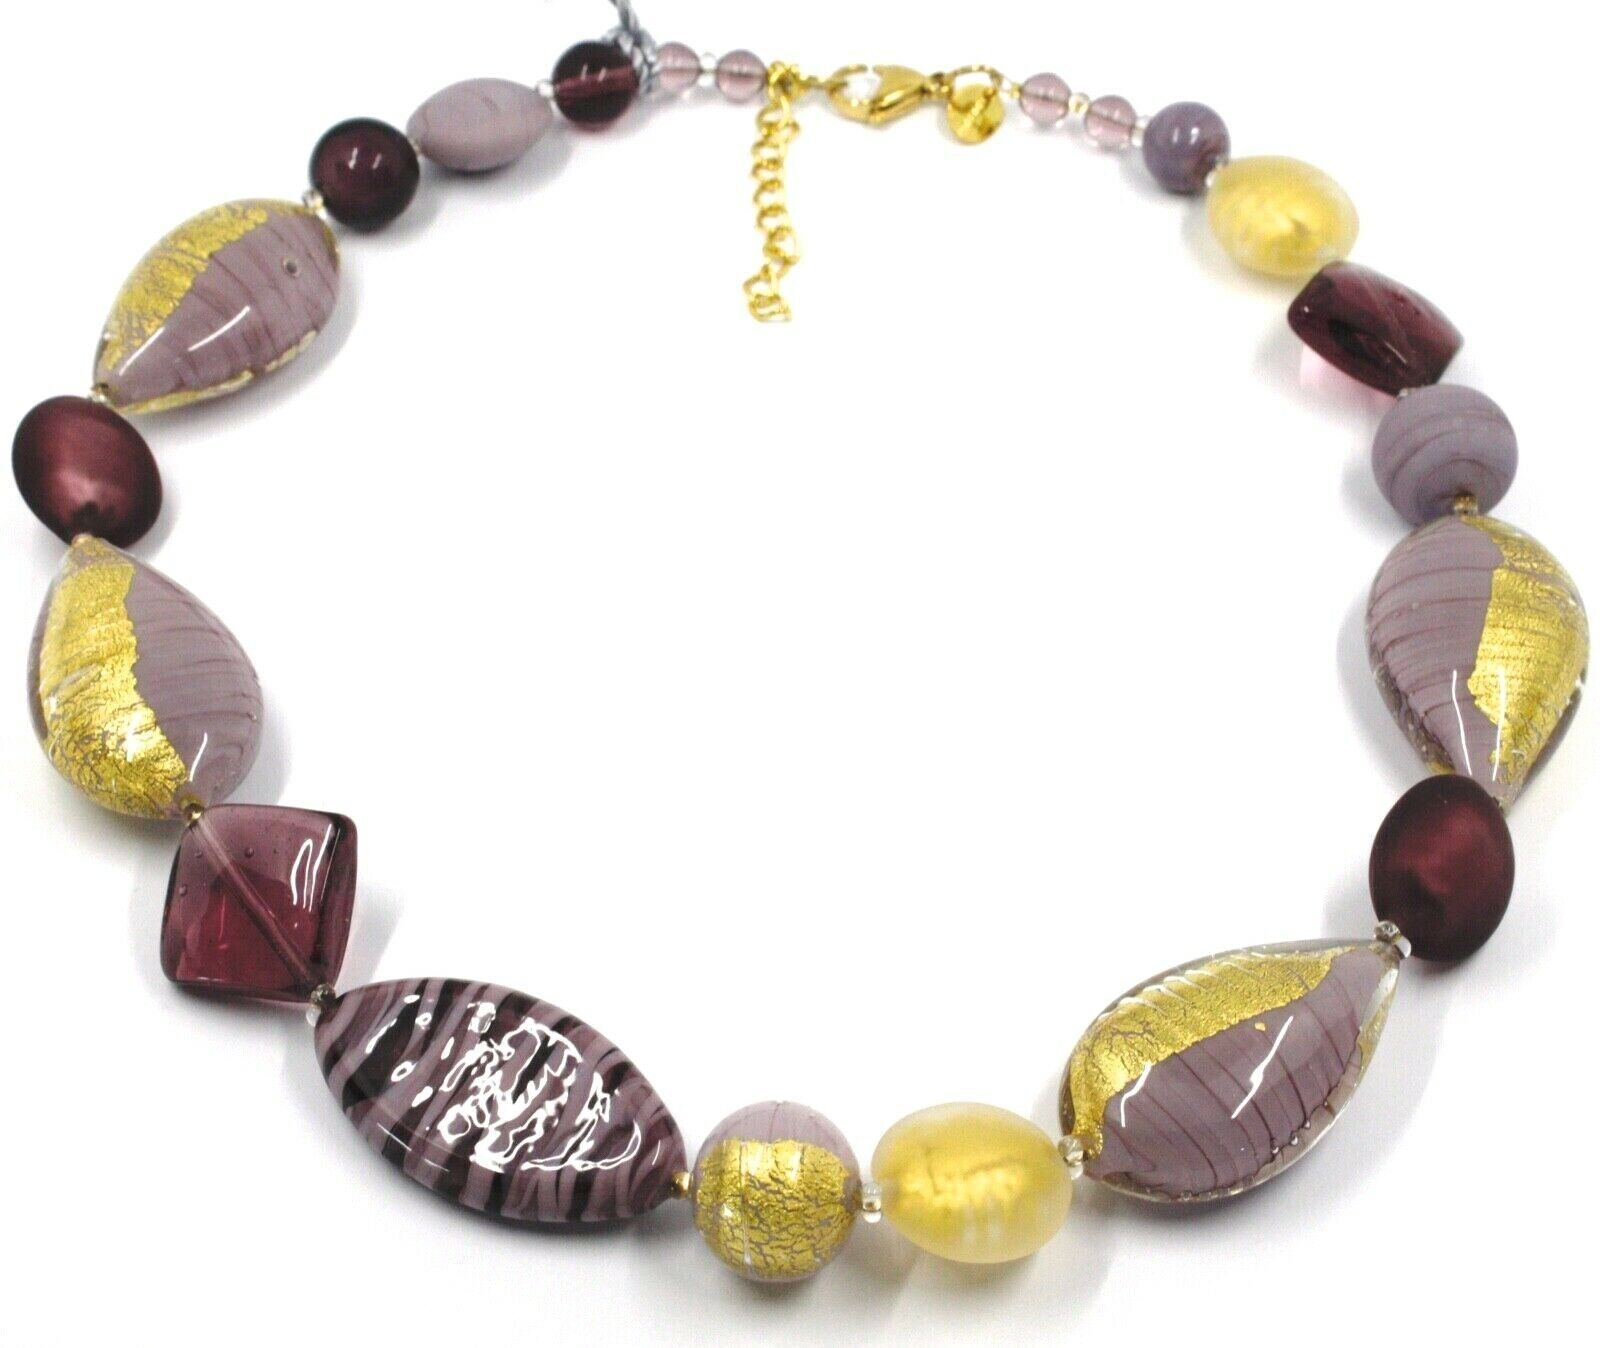 NECKLACE PURPLE SPHERE OVAL DISC DROP SQUARE MURANO GLASS GOLD LEAF, MADE ITALY